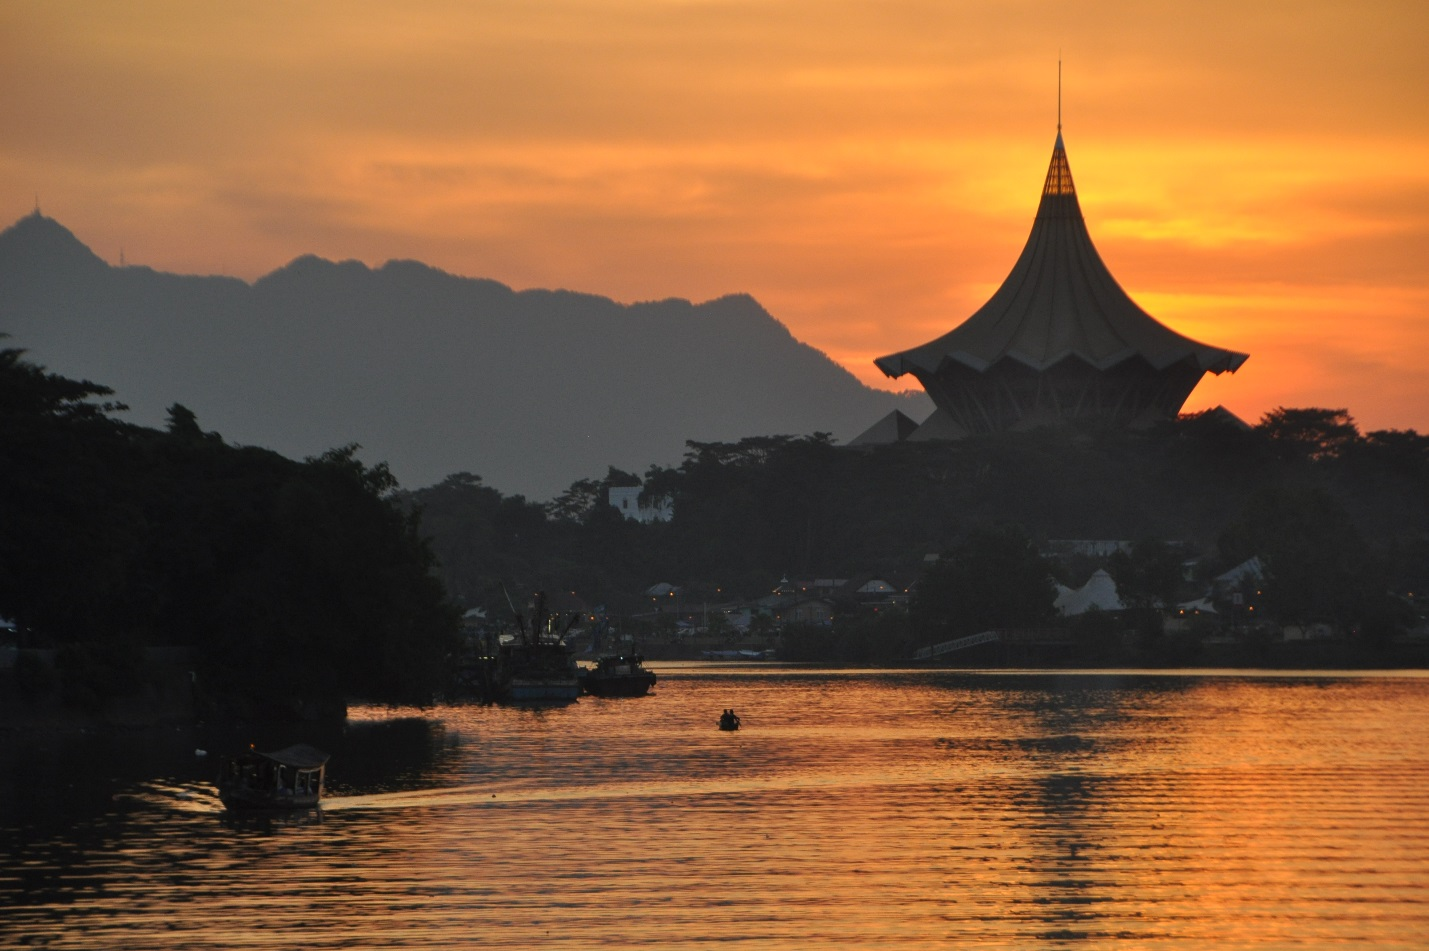 Photo shows sunset over the Kuching Waterfront.